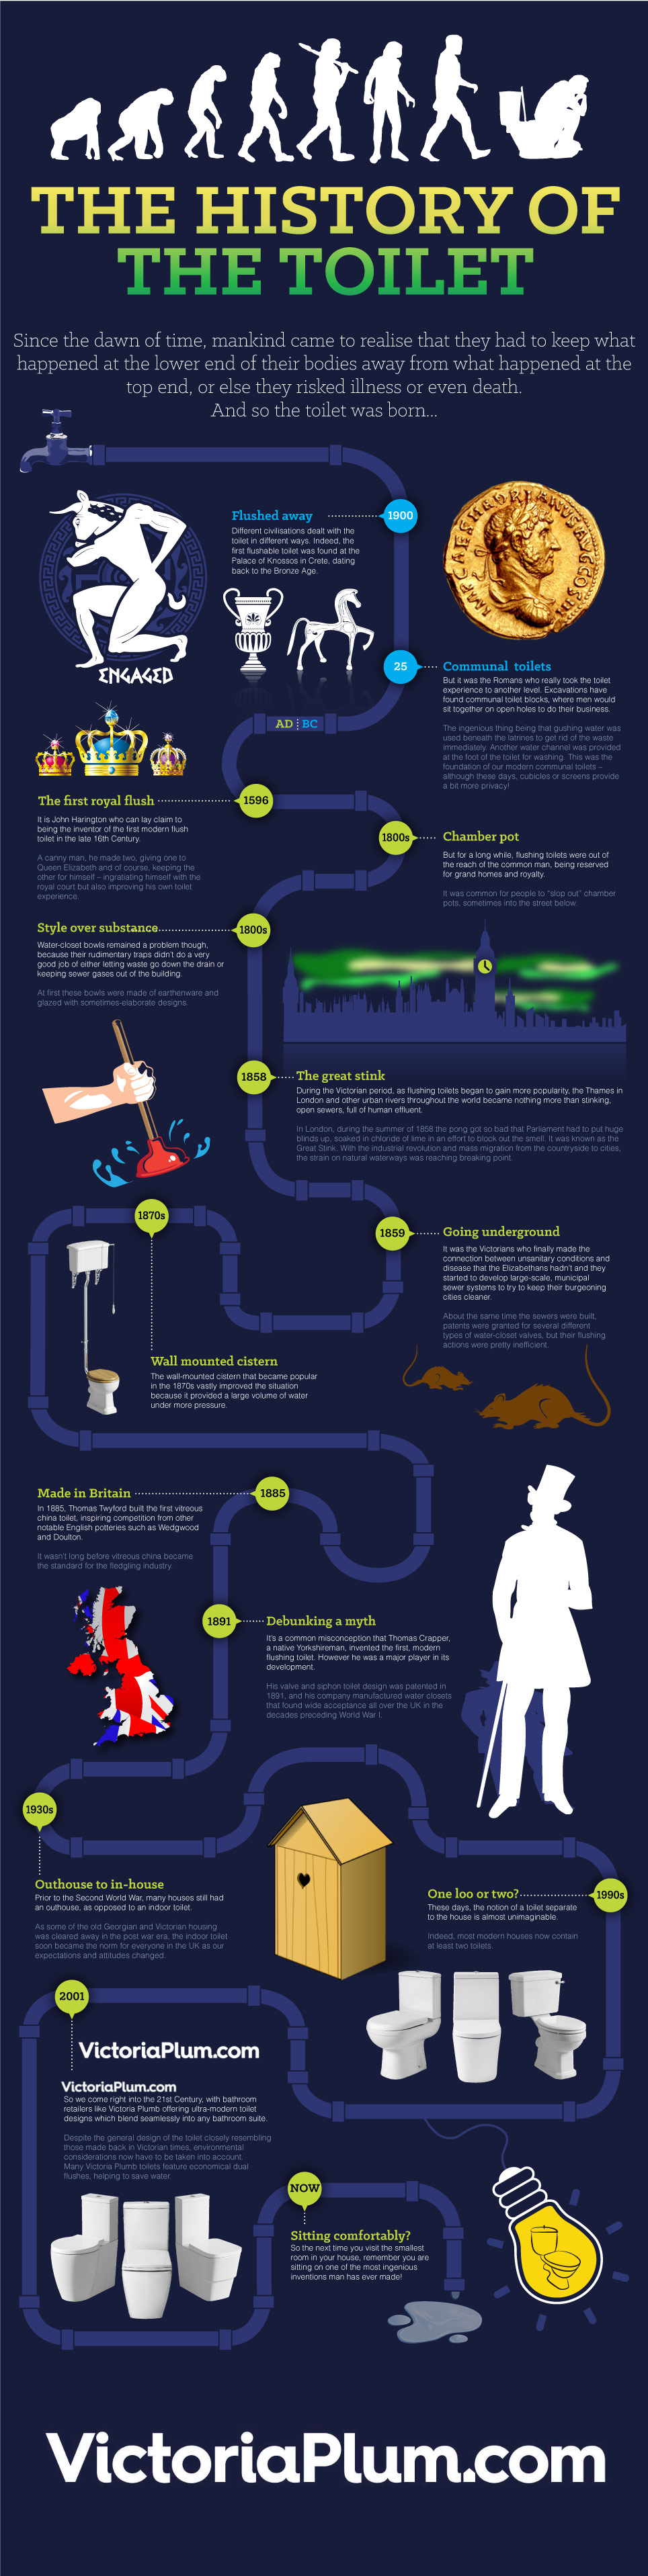 History of the Toilet Infographic